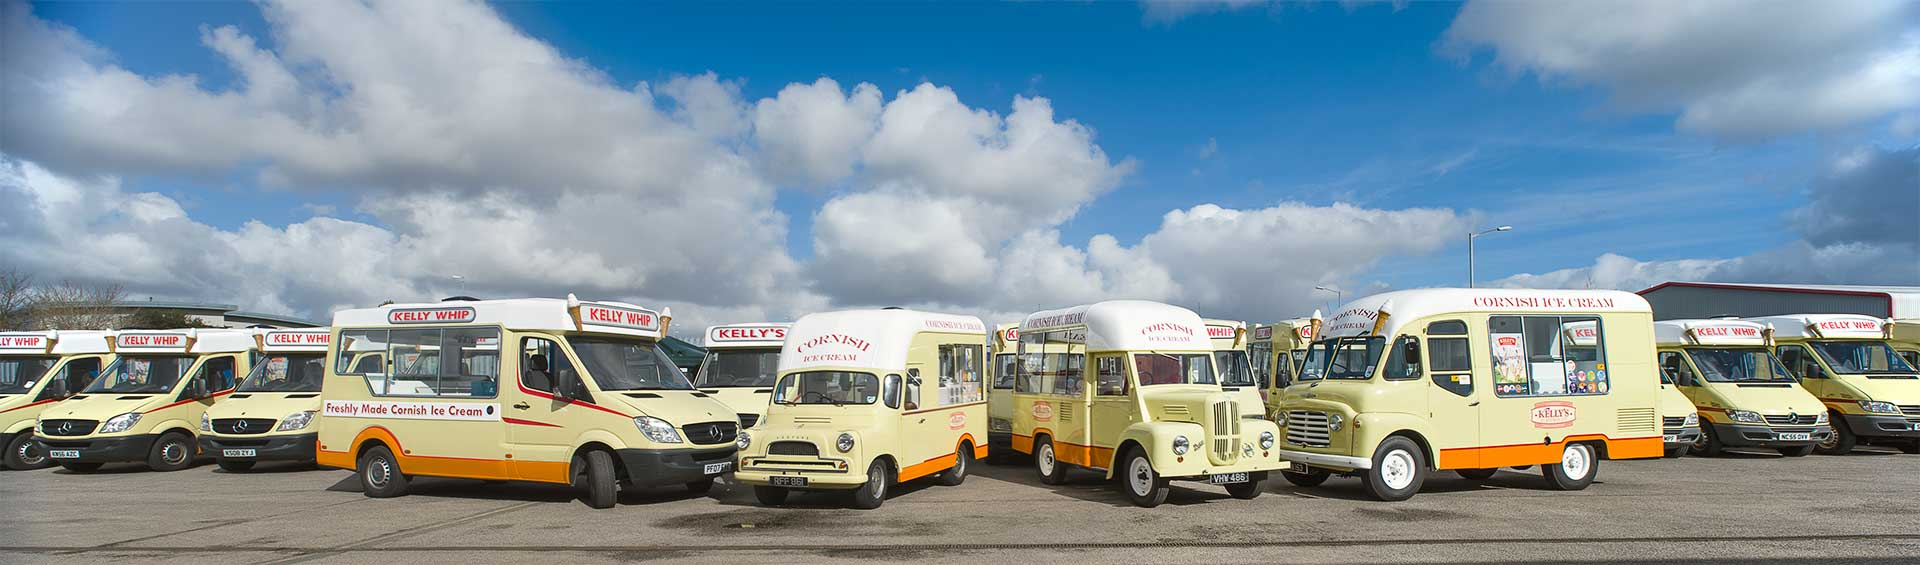 Kellys Ice Cream Vans of Bodmin, Cornwall